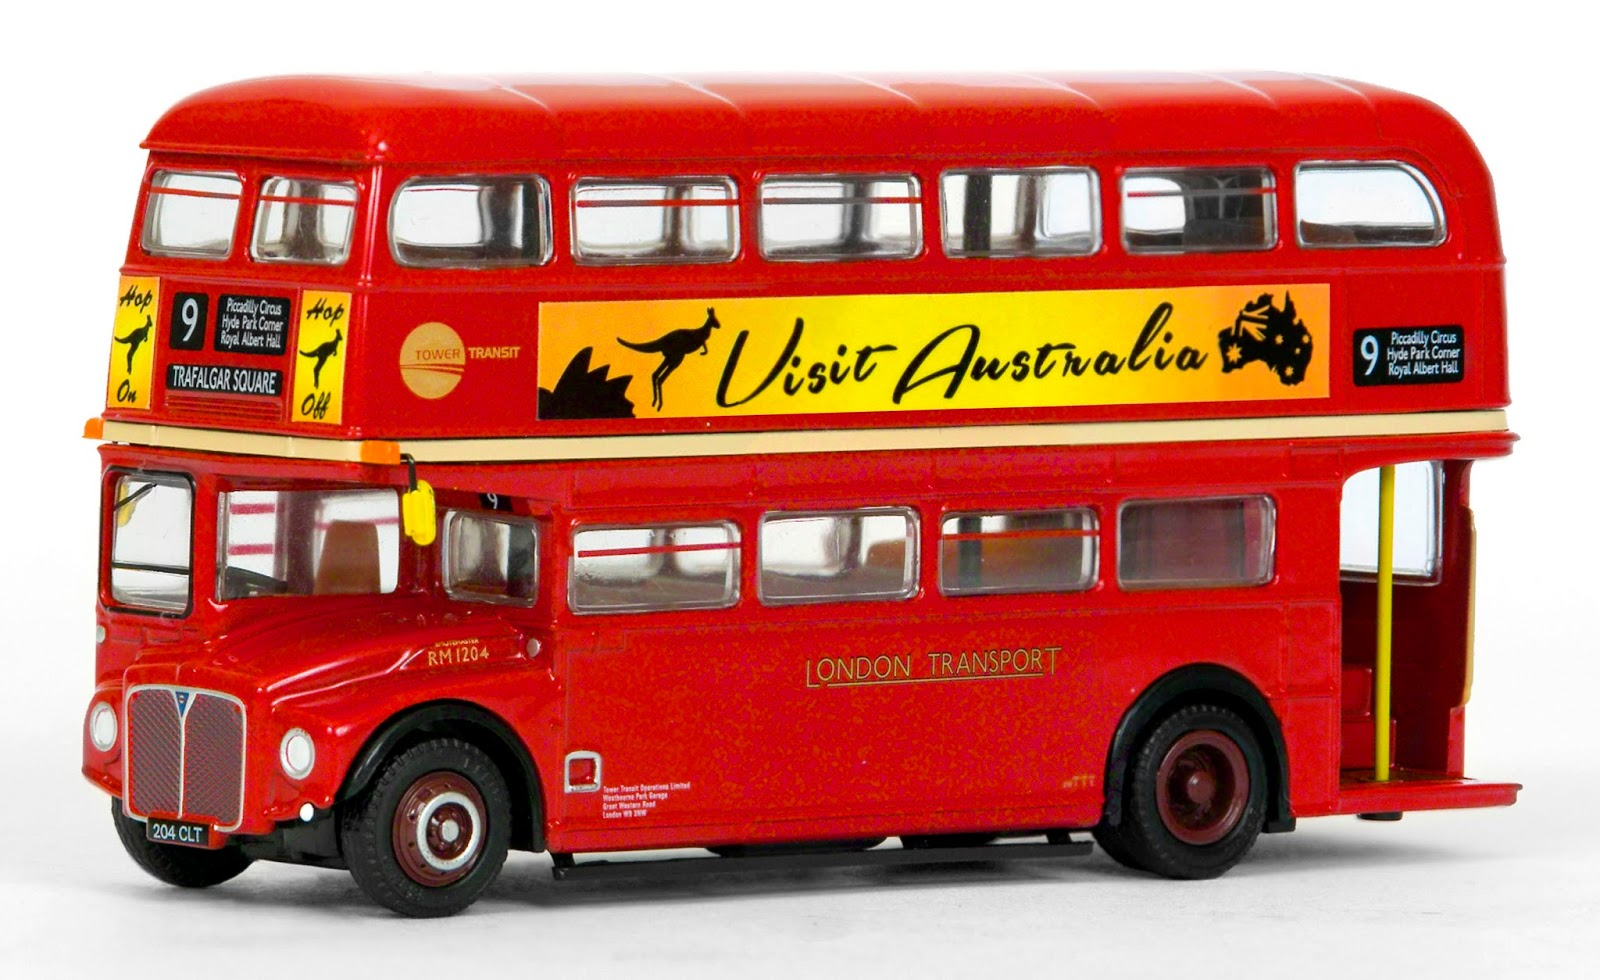 EFE 31513 - AEC Routemaster - London Transport Tower Transit Our model depicts RM 1204, registered 204 CLT working on route 9 to trafalgar Square, and displaying Visit Australia advertising all round.